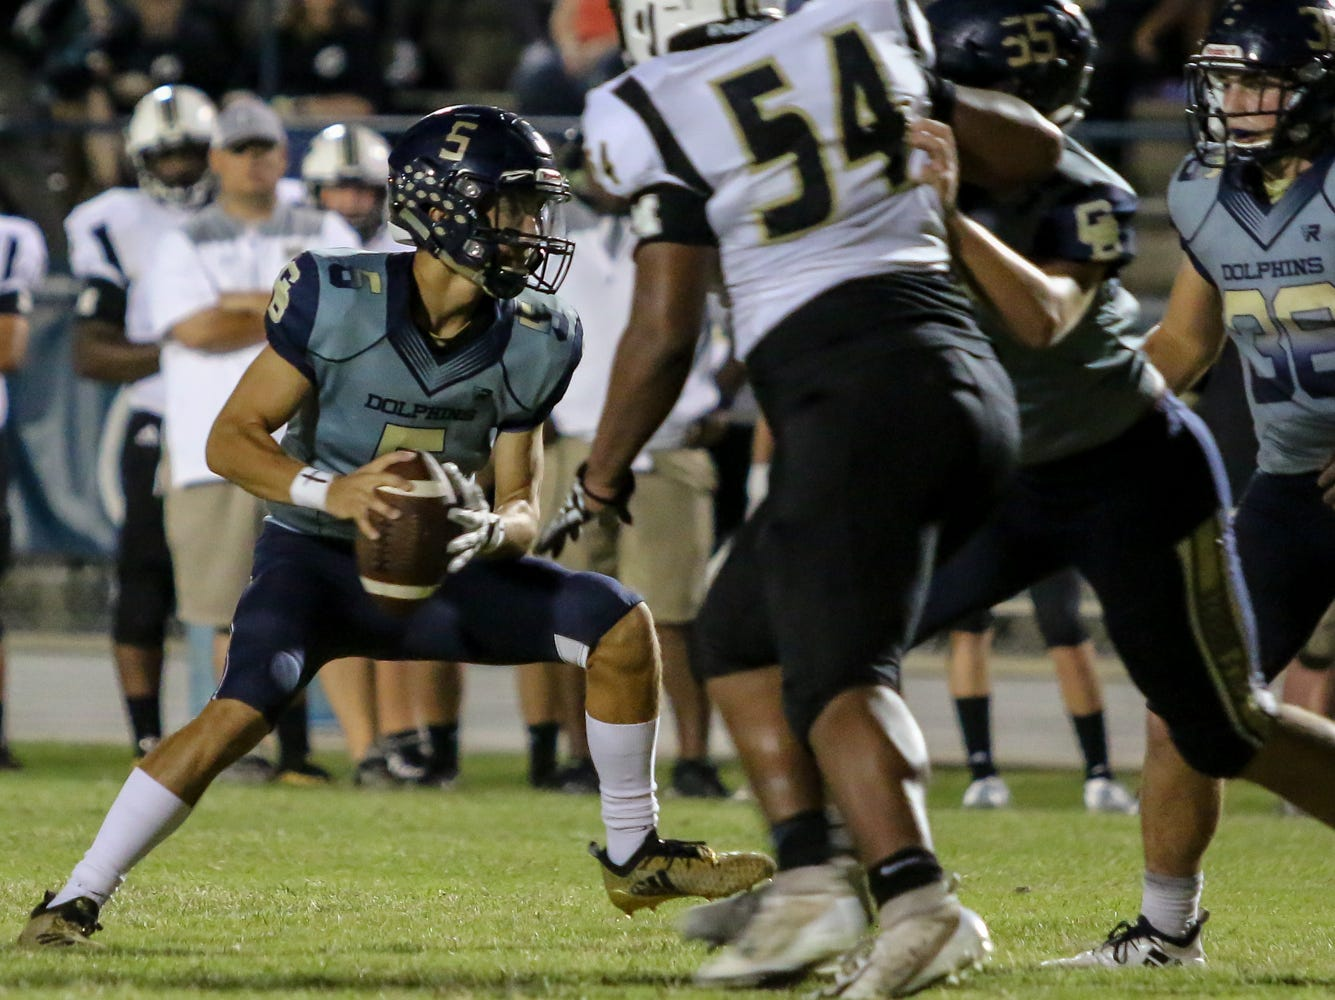 Gulf Breeze quarterback Dylon Kelley (5) keeps the ball and runs in for a touchdwon in the District 2-6A game against Milton at Gulf Breeze High School on Friday.